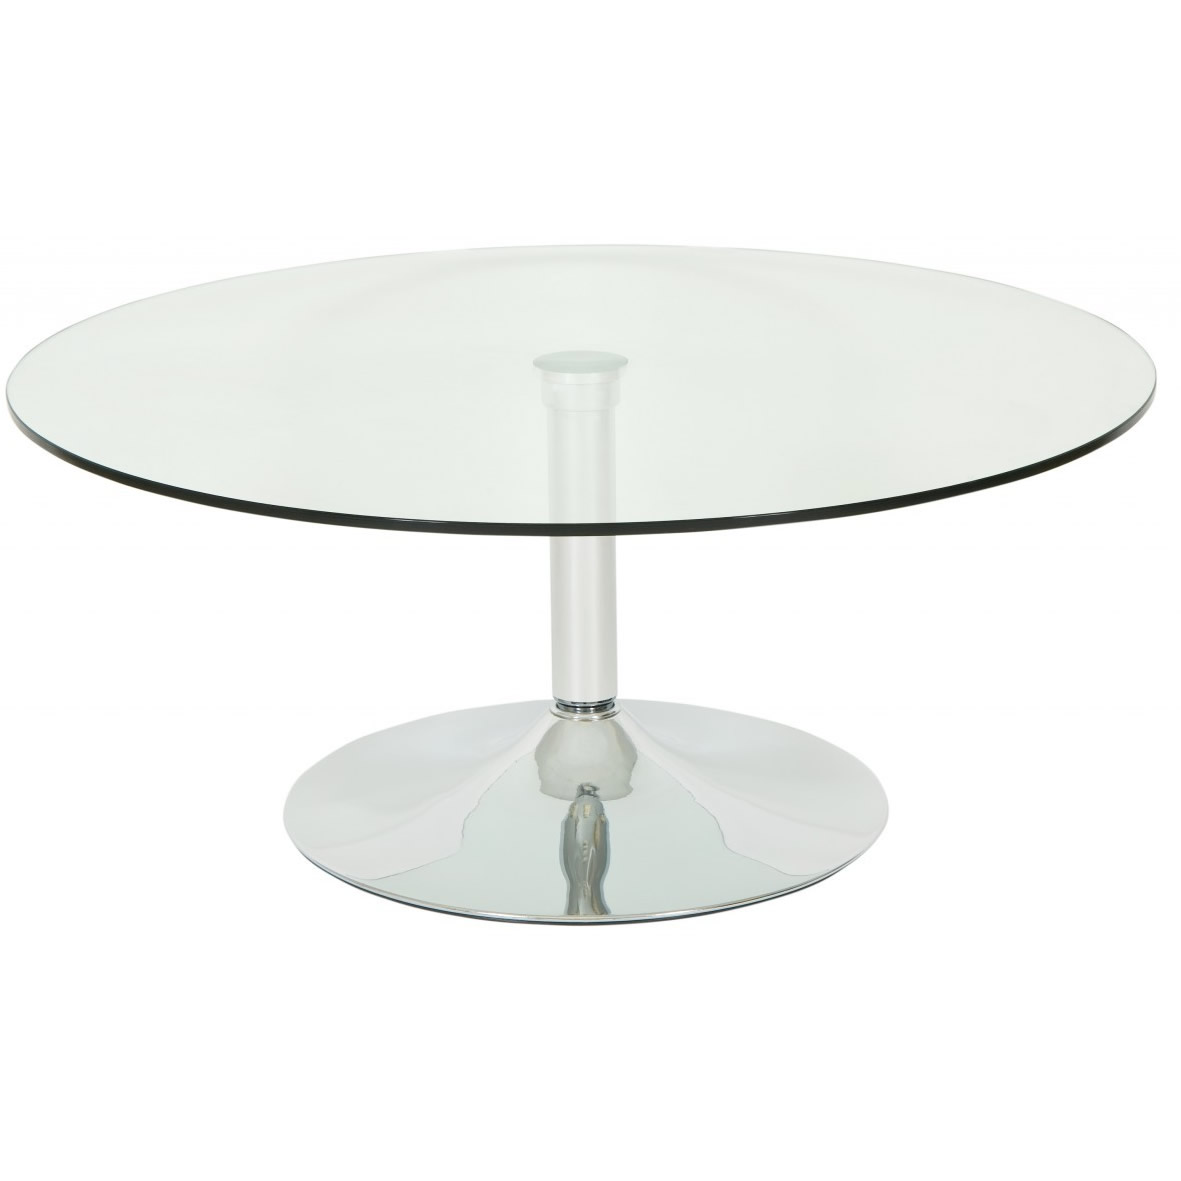 Attractive Photo Gallery Of The Round Glass Coffee Tables As The Best Decision For  Many Premises Coffee